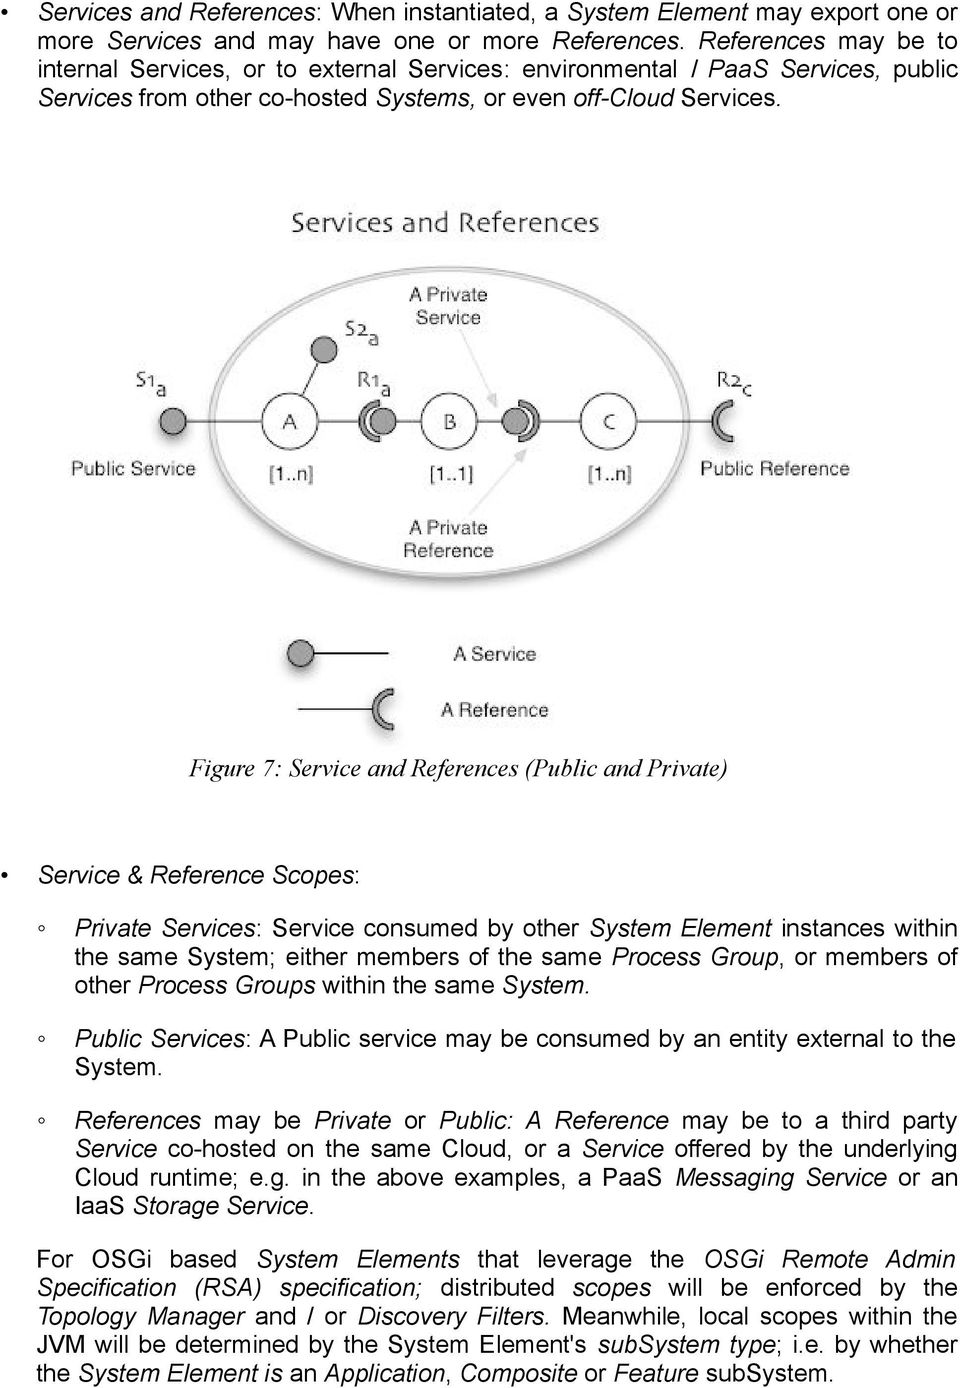 Figure 7: Service and References (Public and Private) Service & Reference Scopes: Private Services: Service consumed by other System Element instances within the same System; either members of the